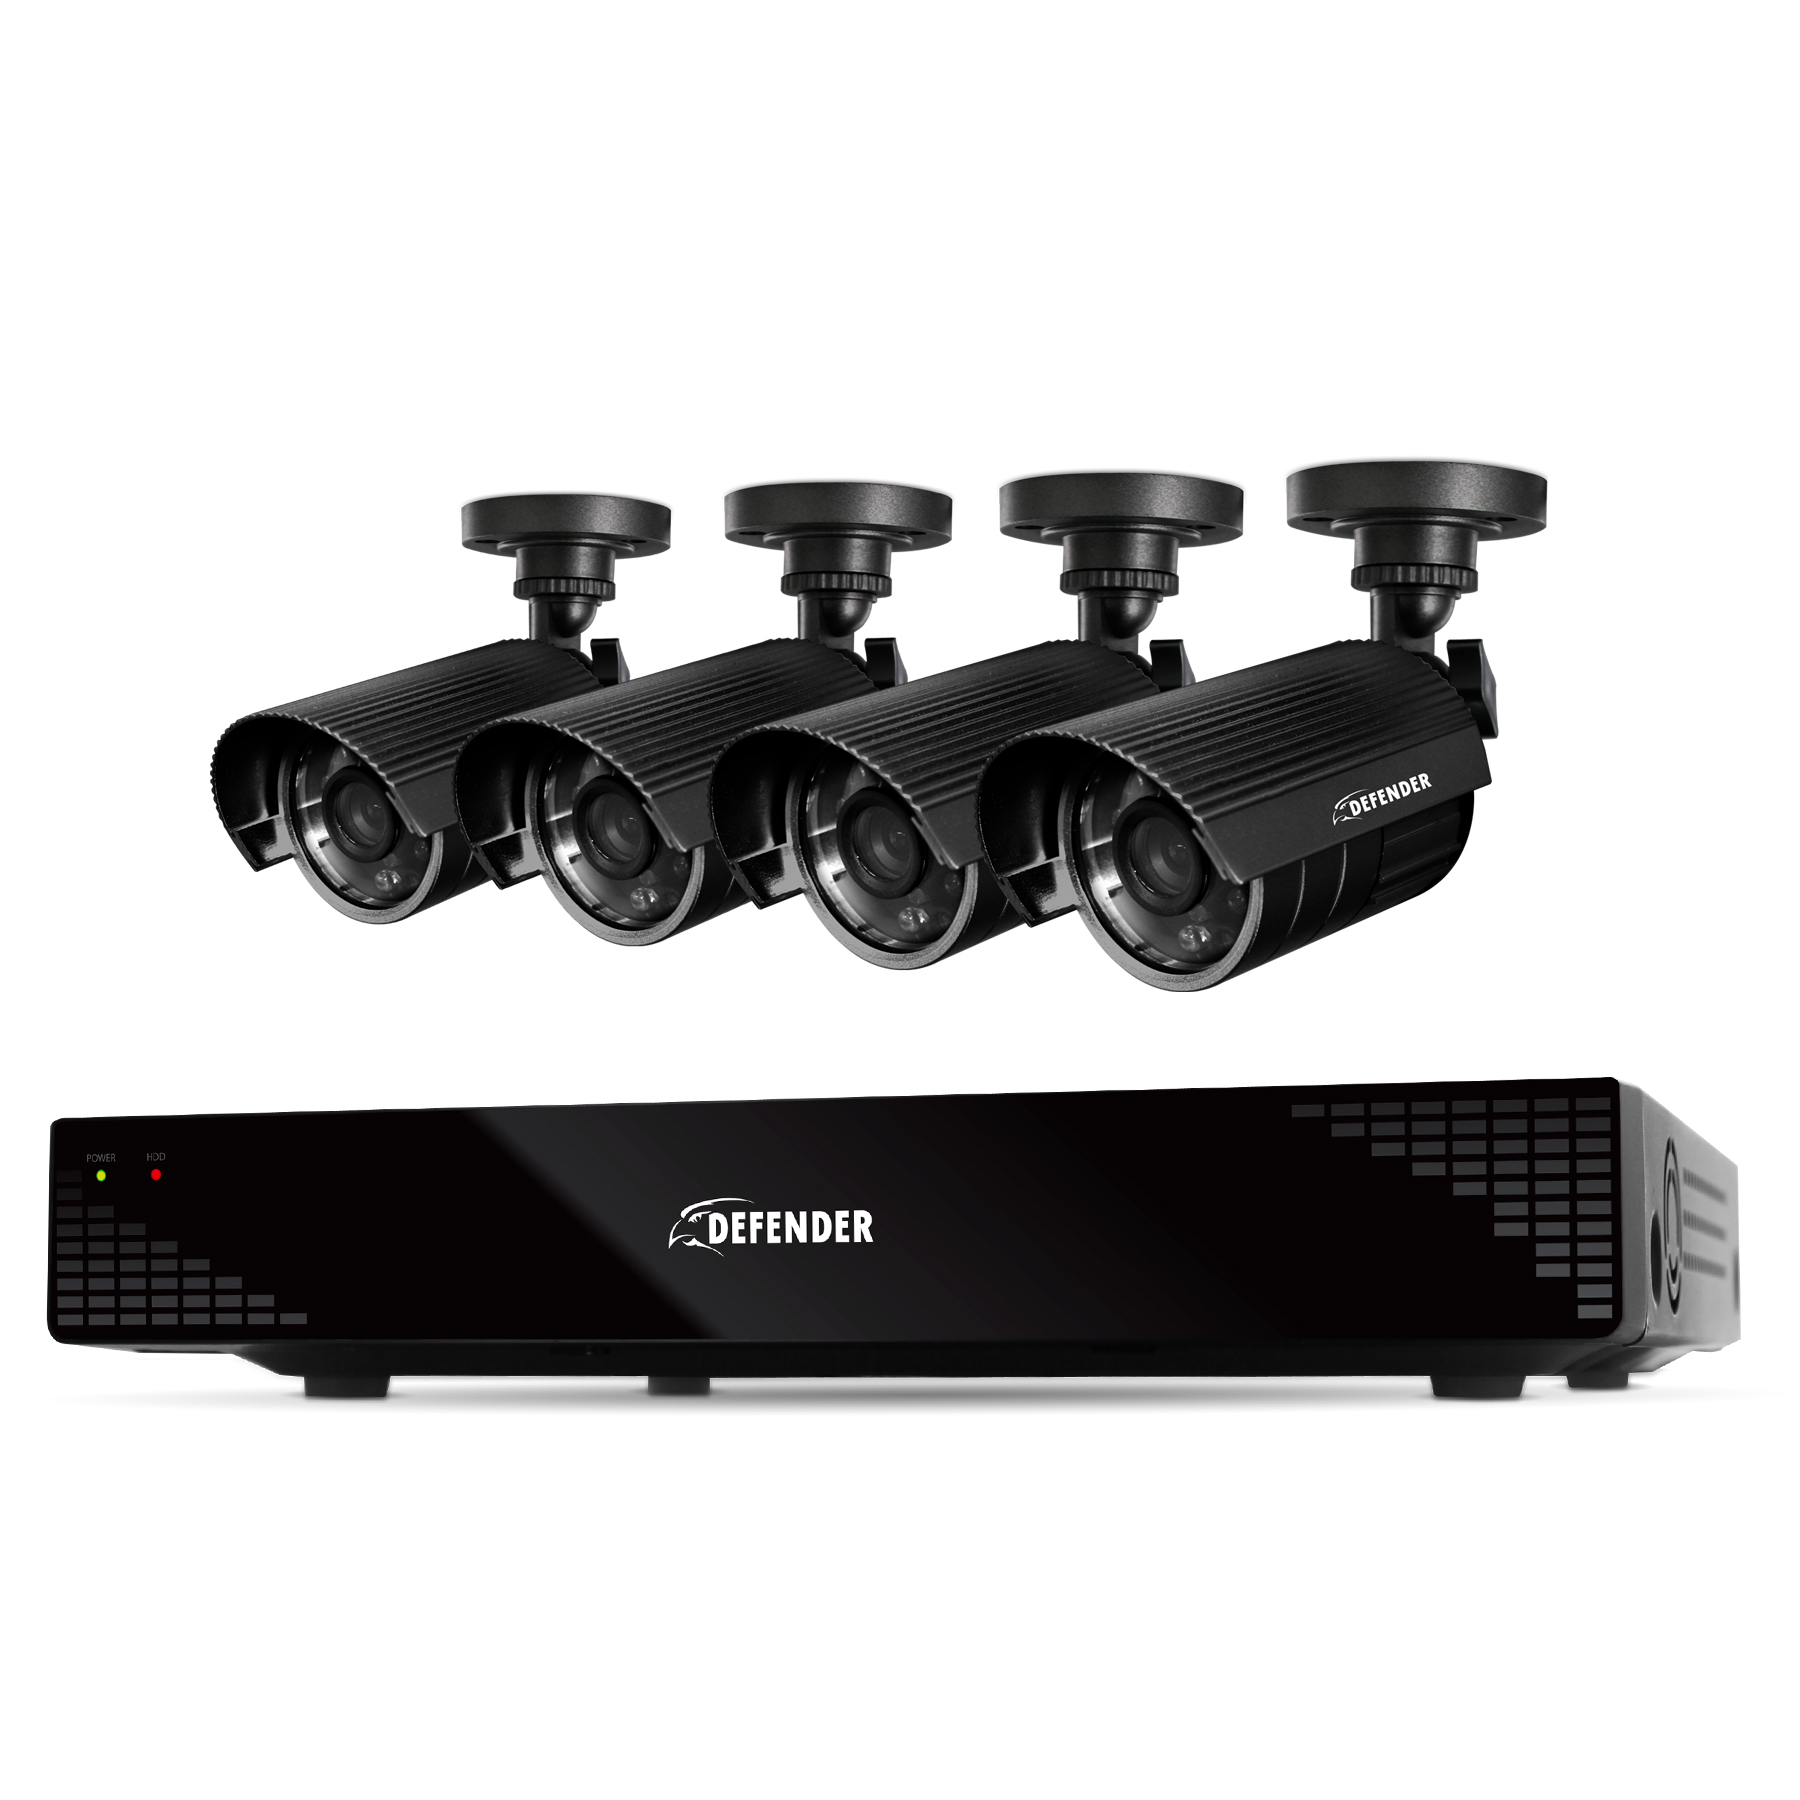 21032 - Defender Scout 4CH H.265 Smart Security DVR with 4 x 480TVL 75ft Cameras - 21032